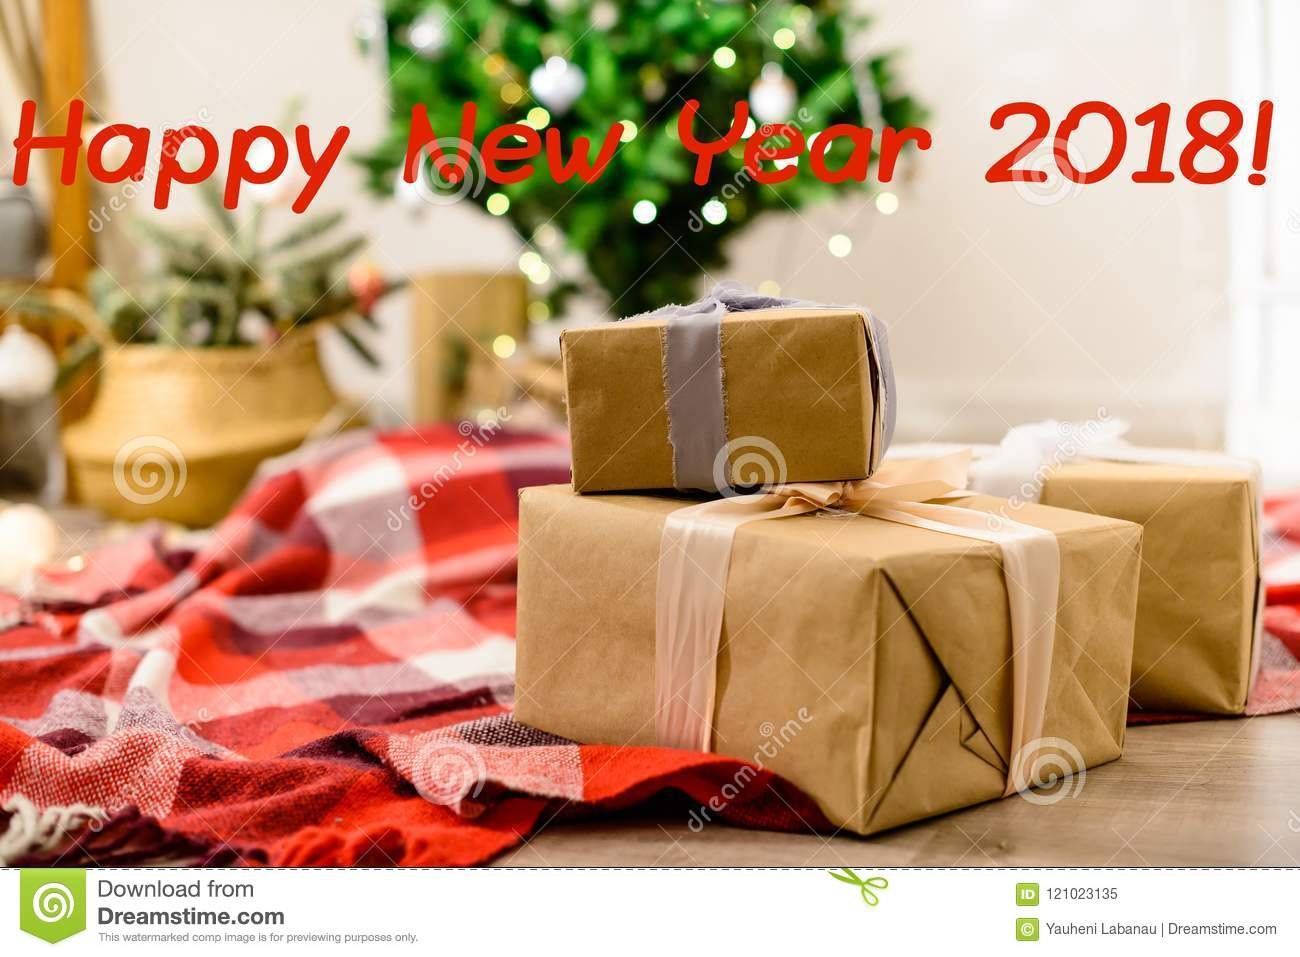 Beautiful Christmas Interior Design With Happy New Year 2018 Phrase Selective Focus On Gifts On The Background Decorated Room W Stock Image Image Of Happy Brightly 121023135